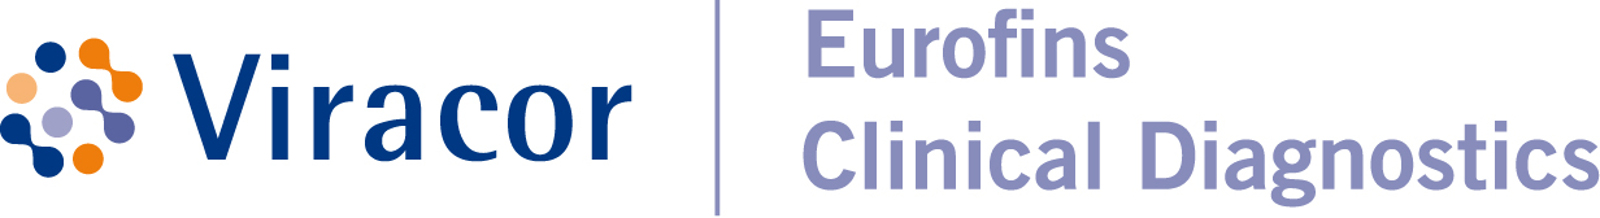 Viracor_Eurofins Clinical Diagnostics